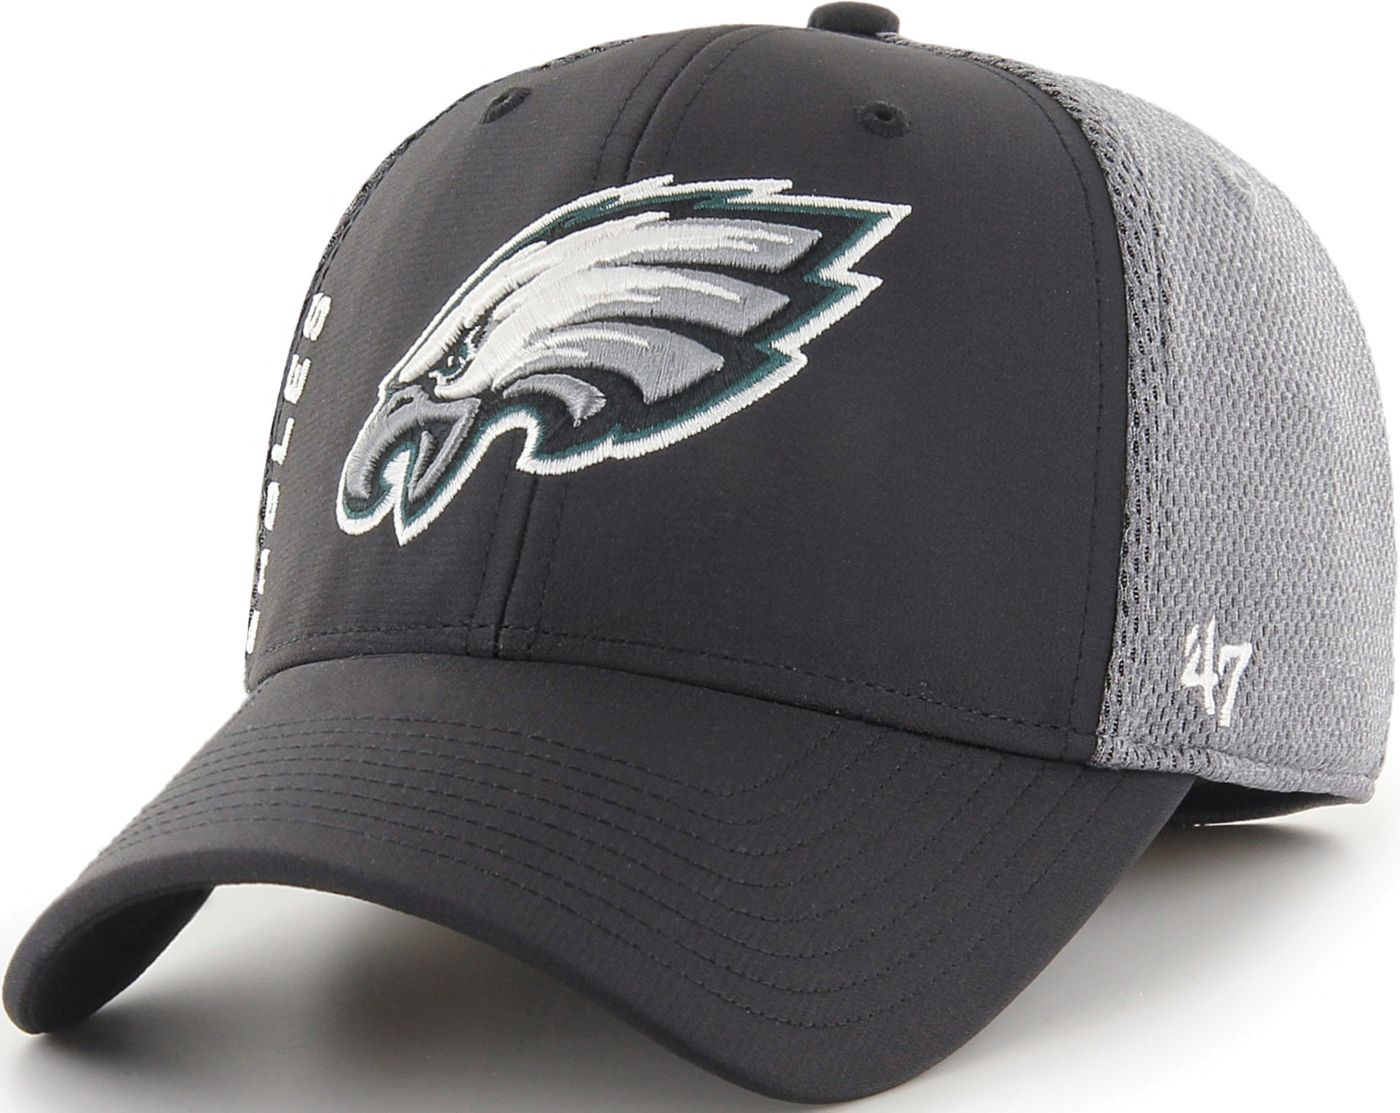 '47 Men's Philadelphia Eagles Wycliff Contender Stretch Fit Black Hat